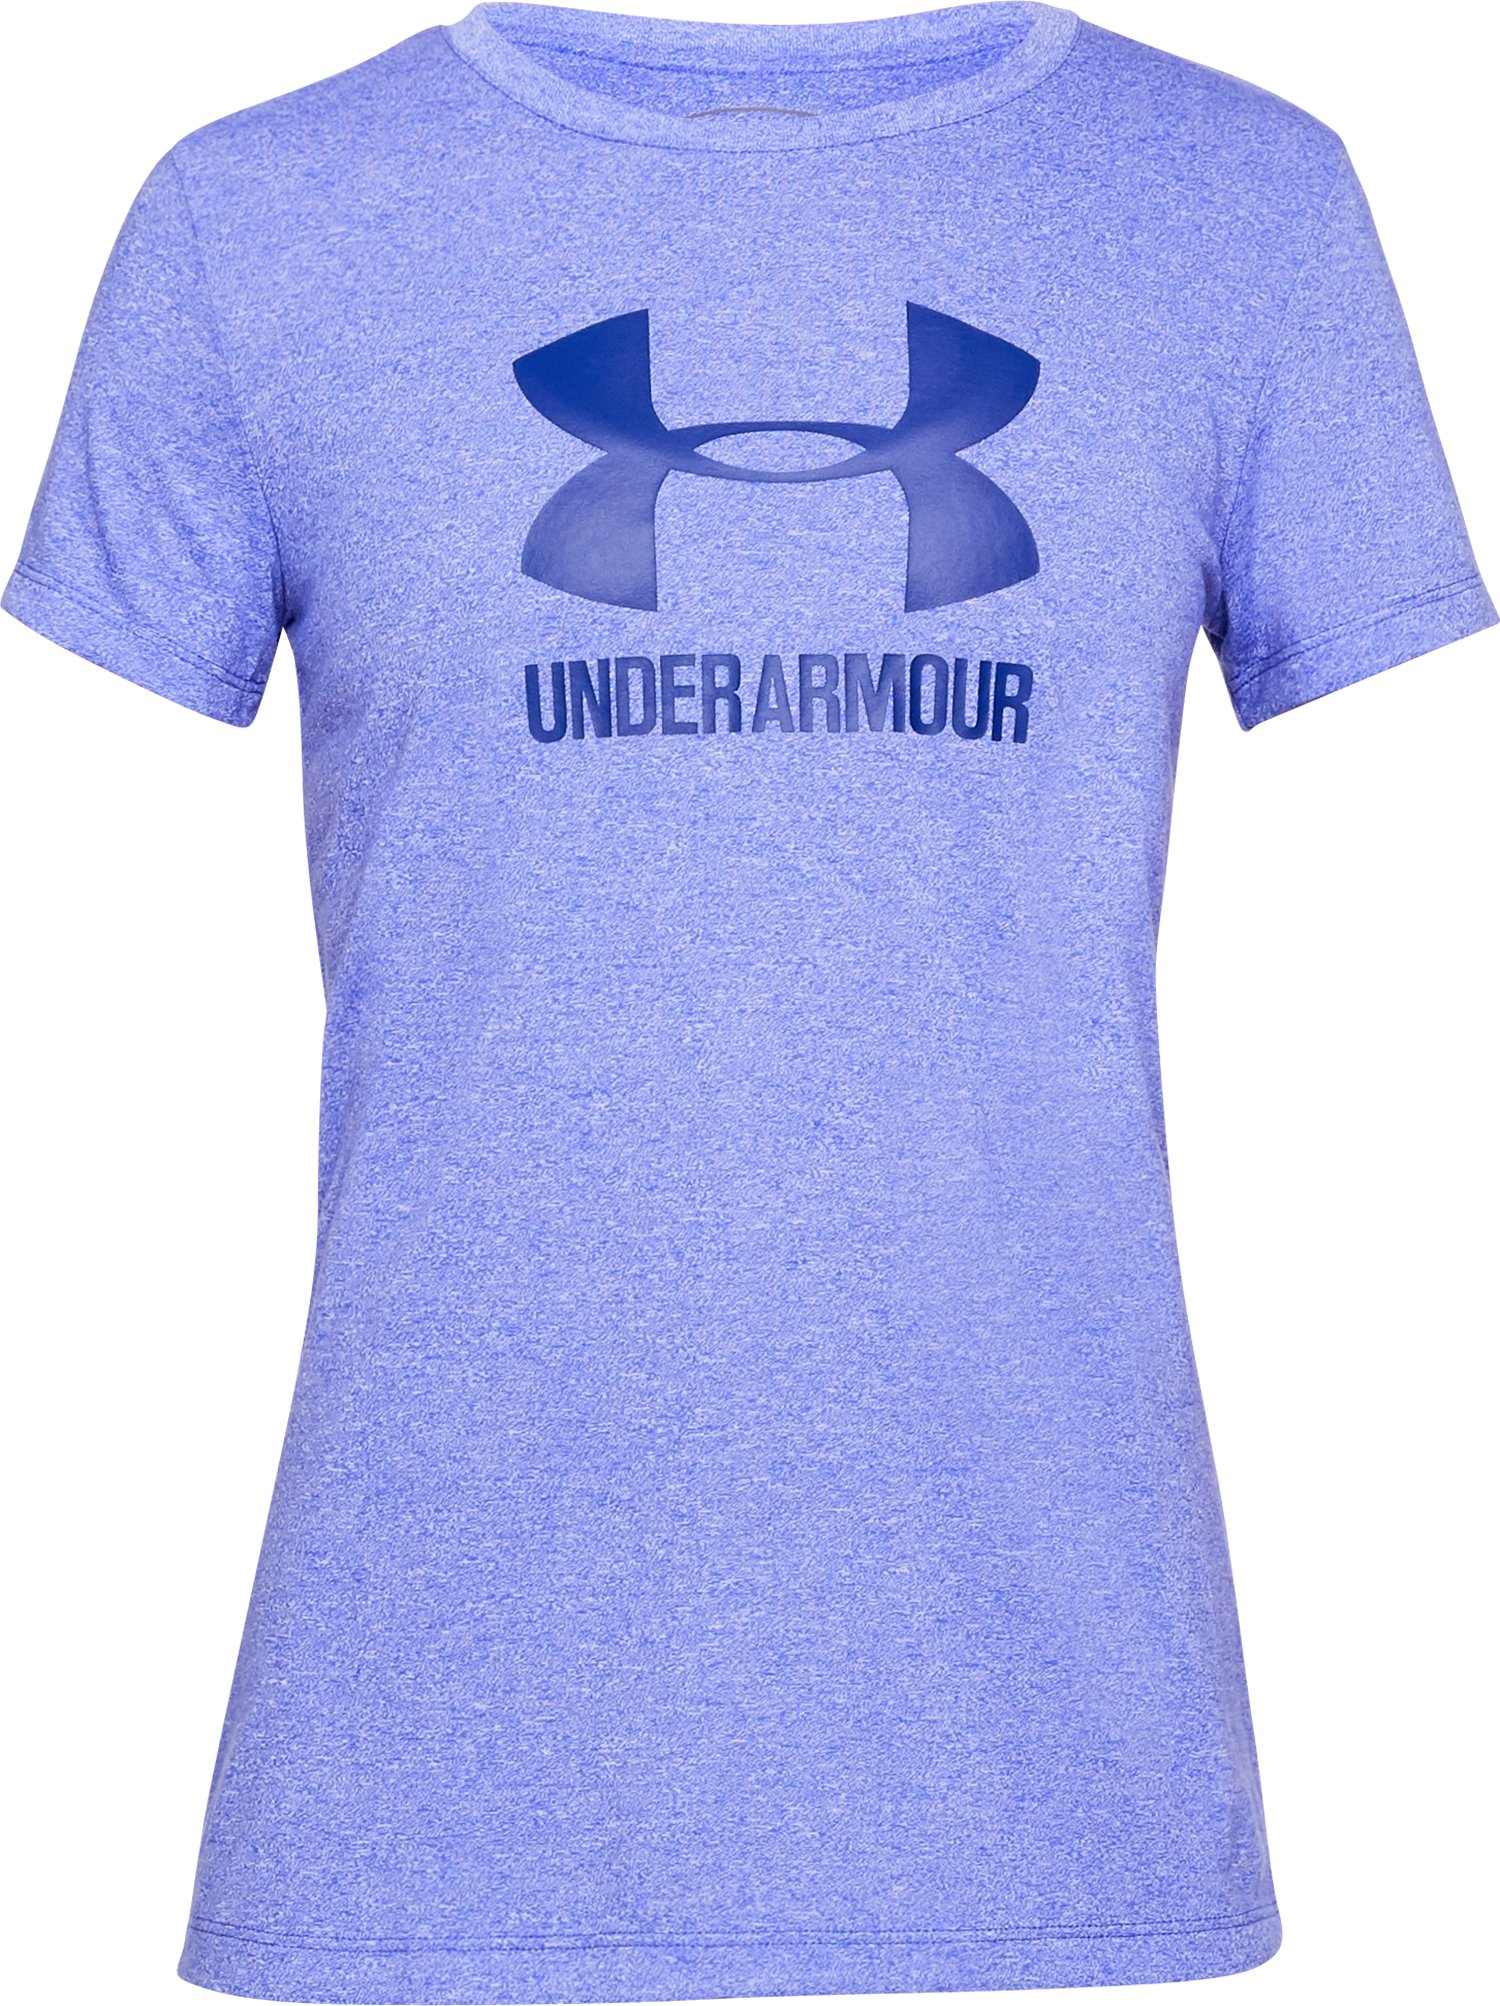 Women's UA Threadborne Sportstyle Crew - Twist, CONSTELLATION PURPLE,